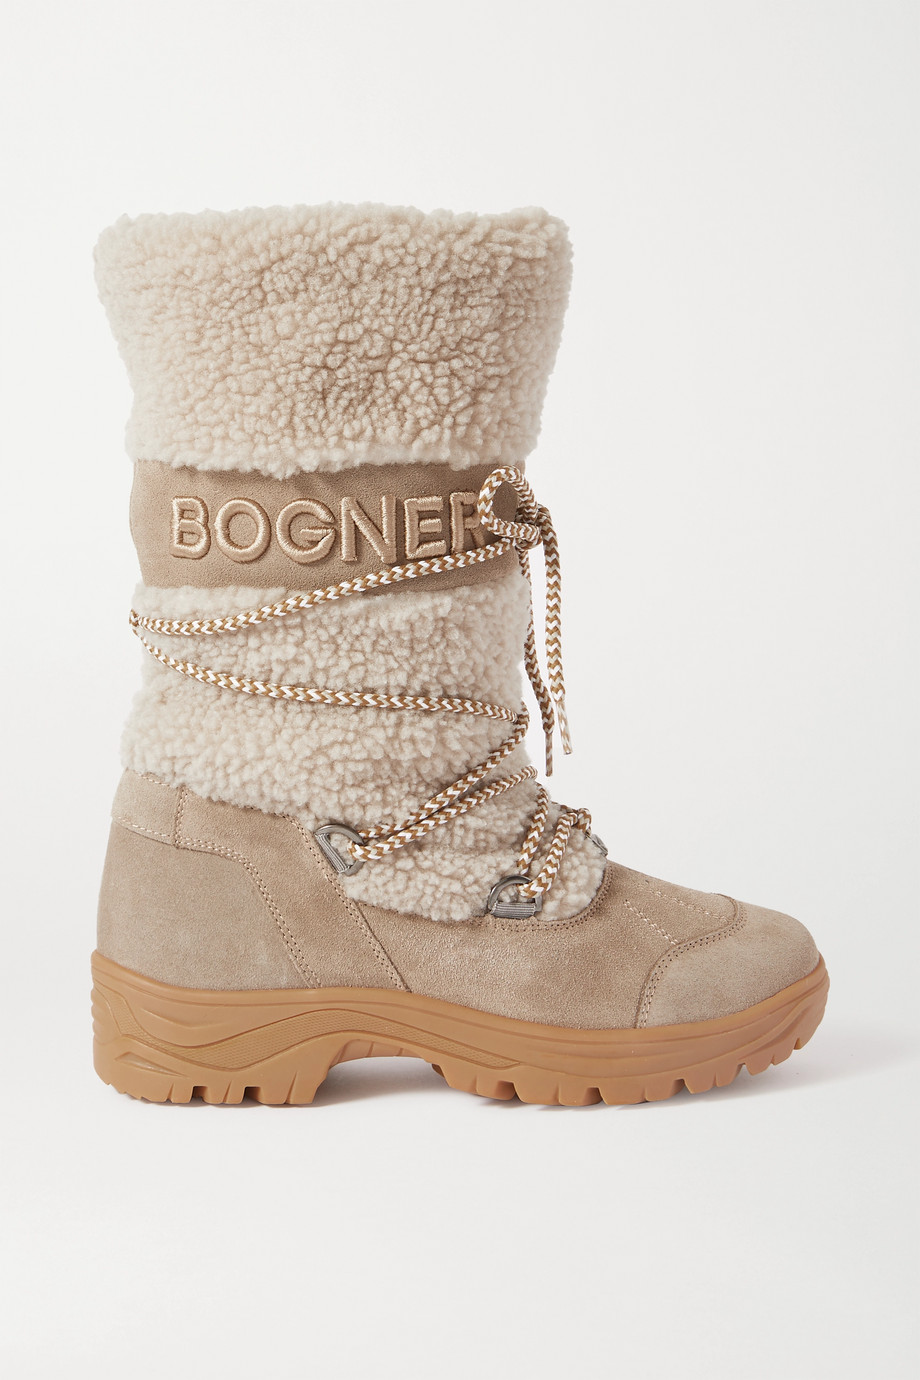 Bogner Alta Badia embroidered shearling and suede snow boots